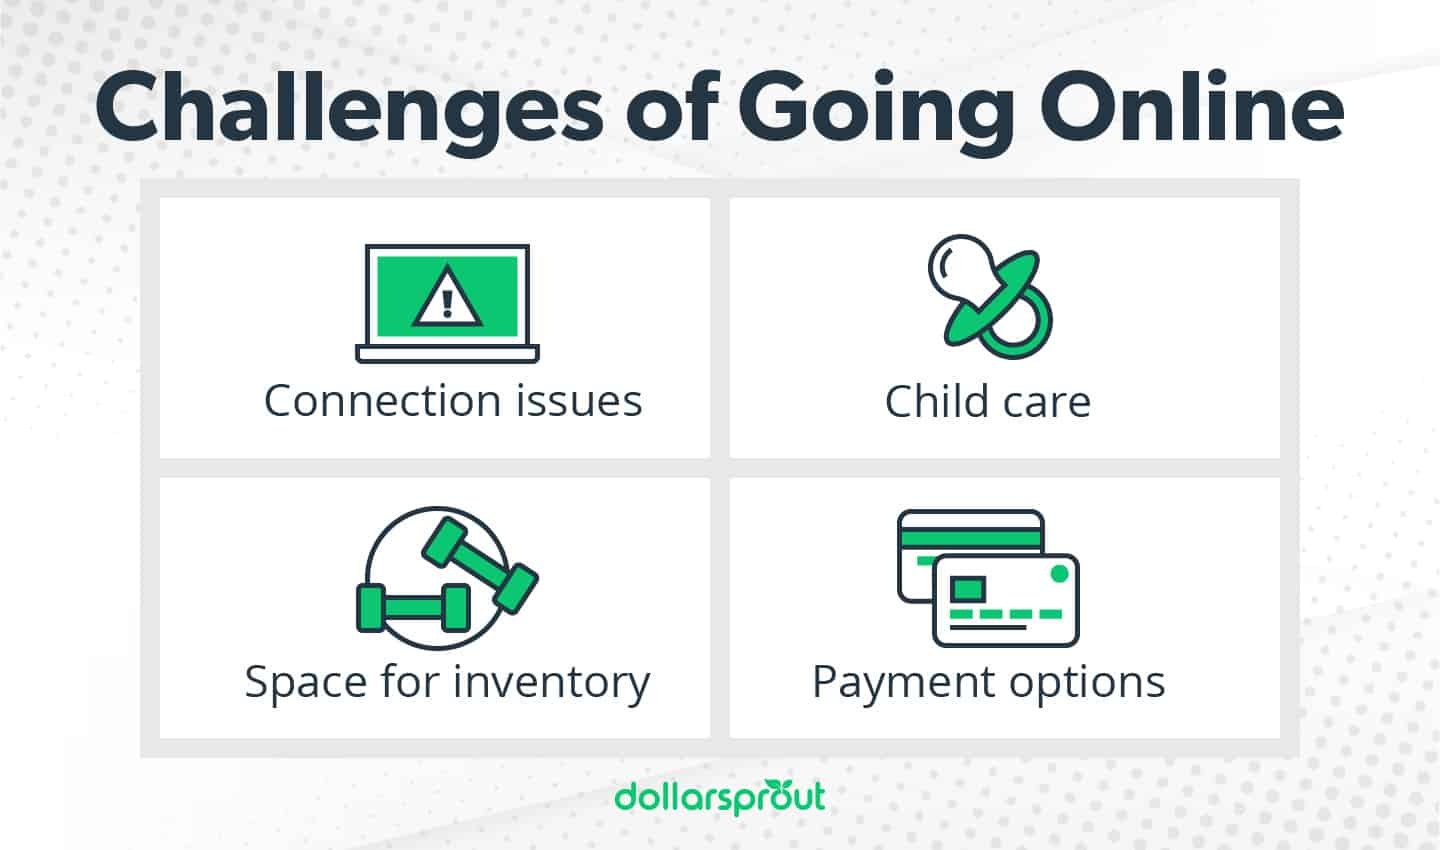 Challenges of going online